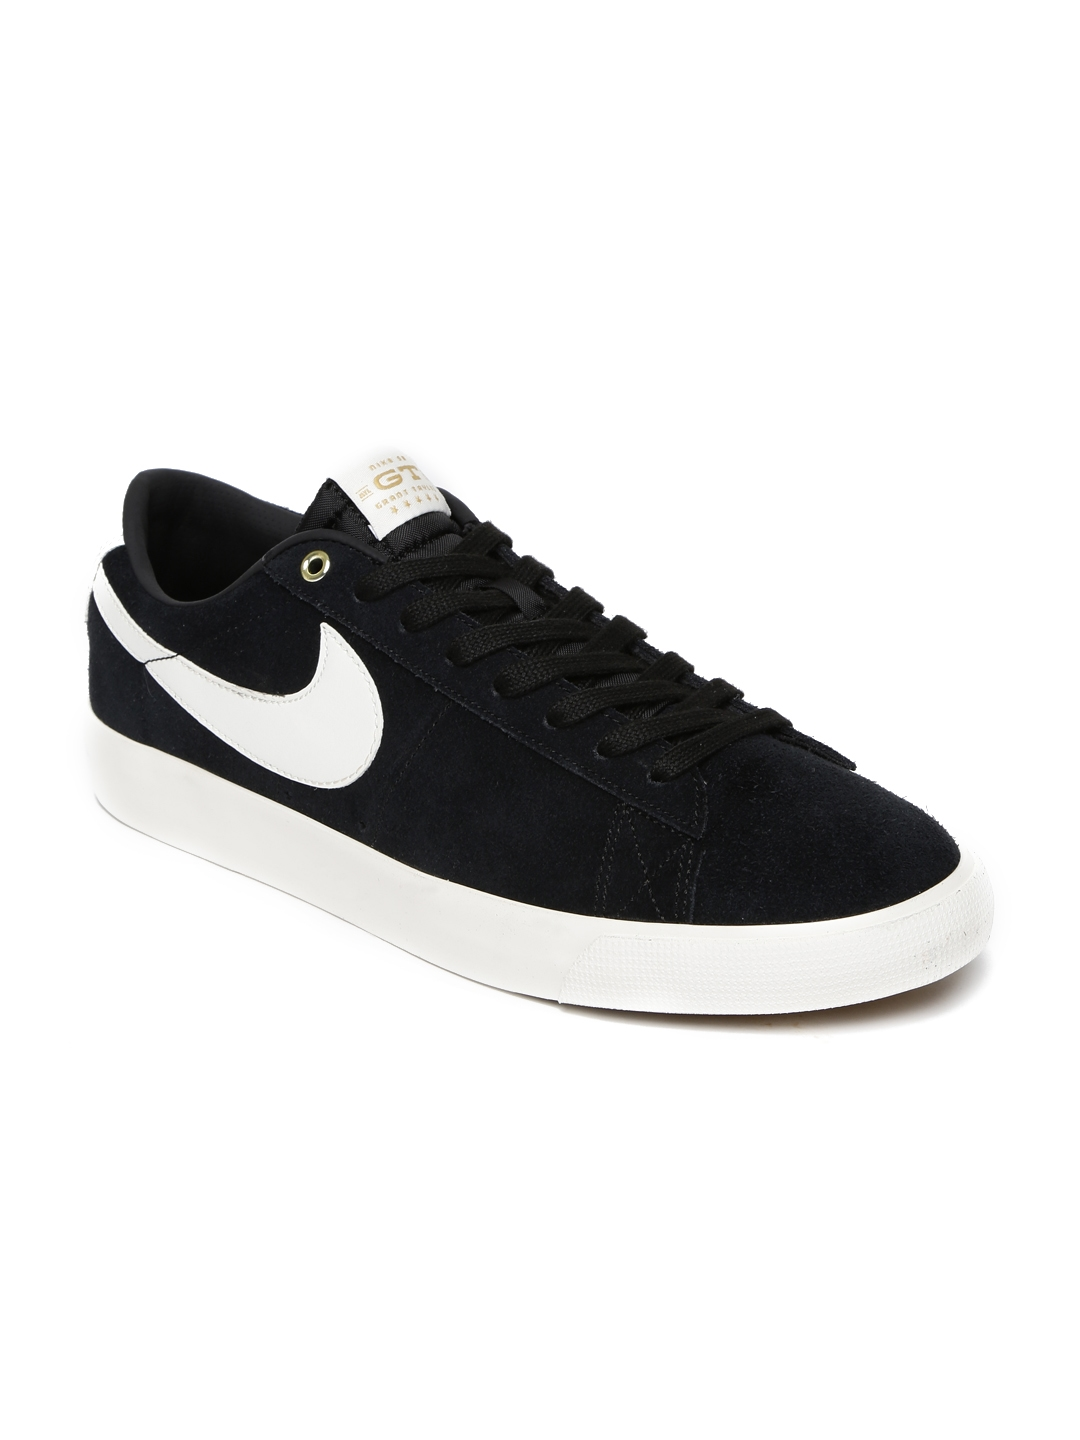 147fc328507e Buy Nike Men Black Blazer Low GT QS Skate Shoes - Casual Shoes for ...